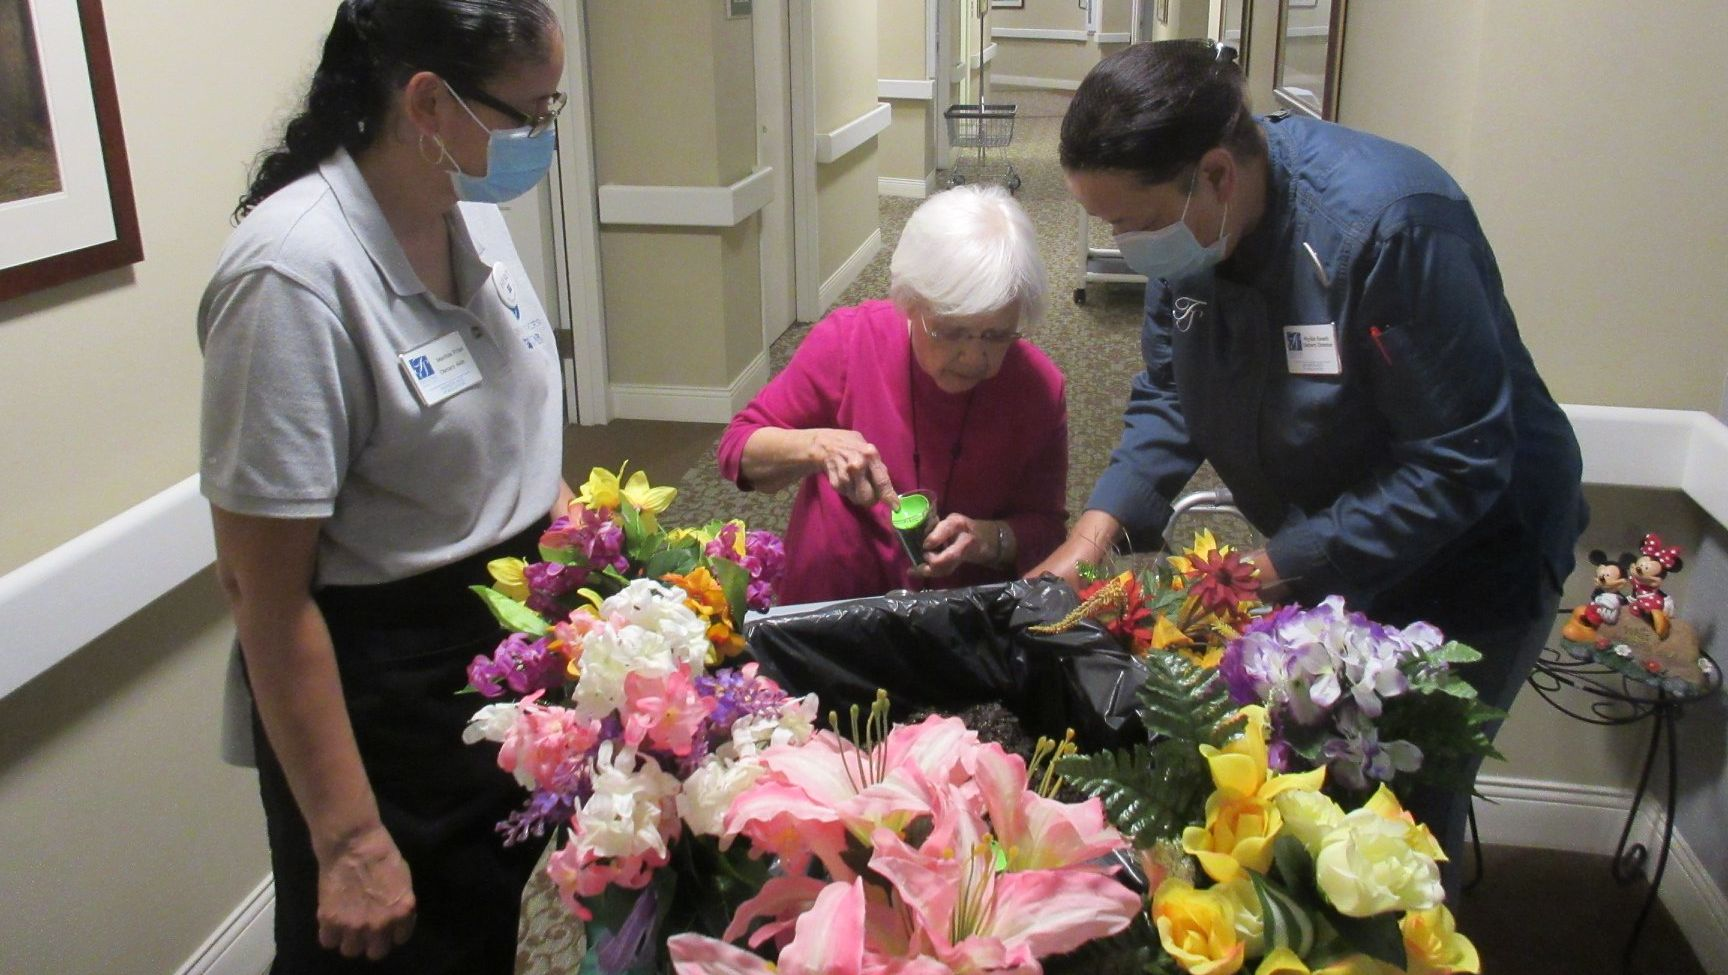 a resident and some employees with flowers